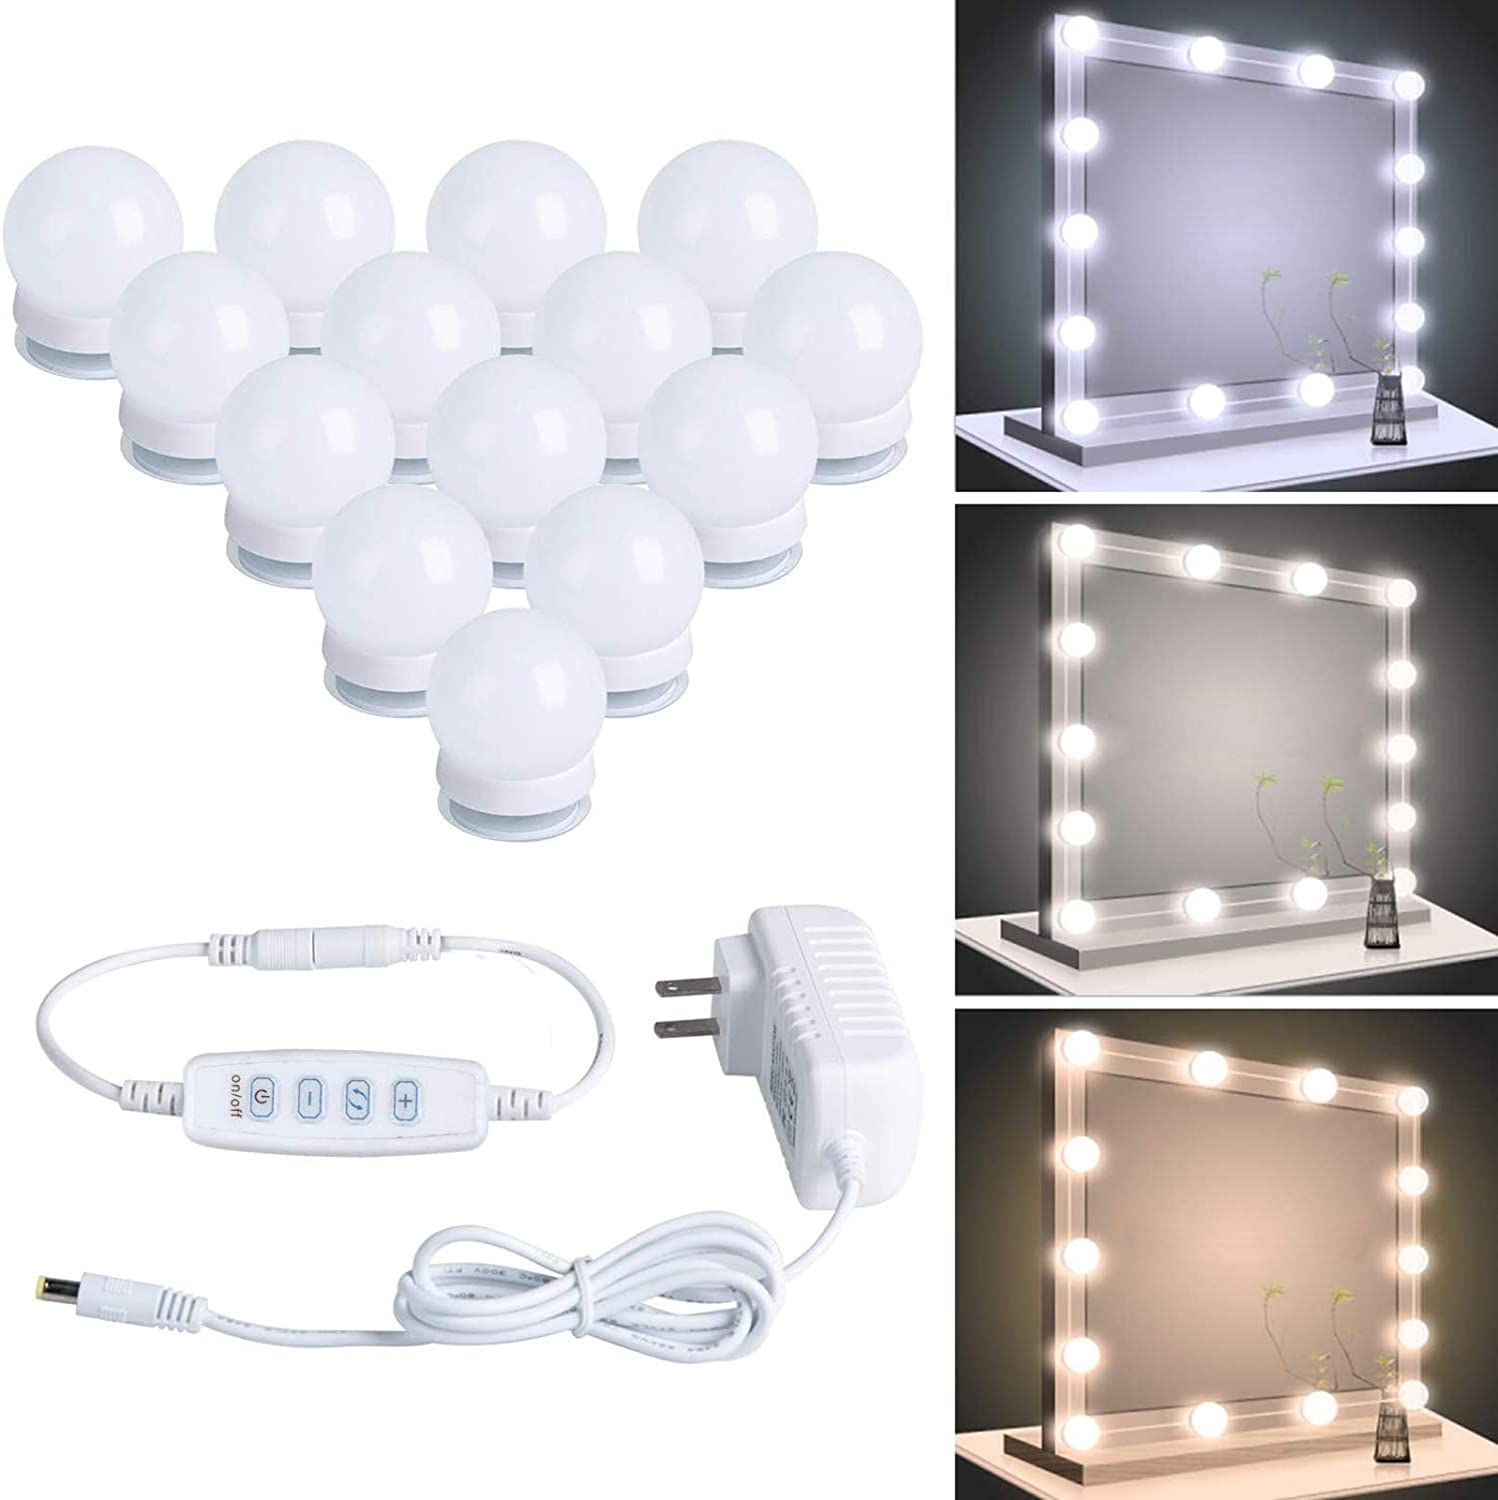 Hollywood Led Vanity Lights Strip Kit with 14 Dimmable Light Bulbs for Full Body Length Makeup Mirror and Bathroom Wall Mirror, Plug in Vanity Mirror Lights with Power Supply, 3 Color Modes: Home Improvement